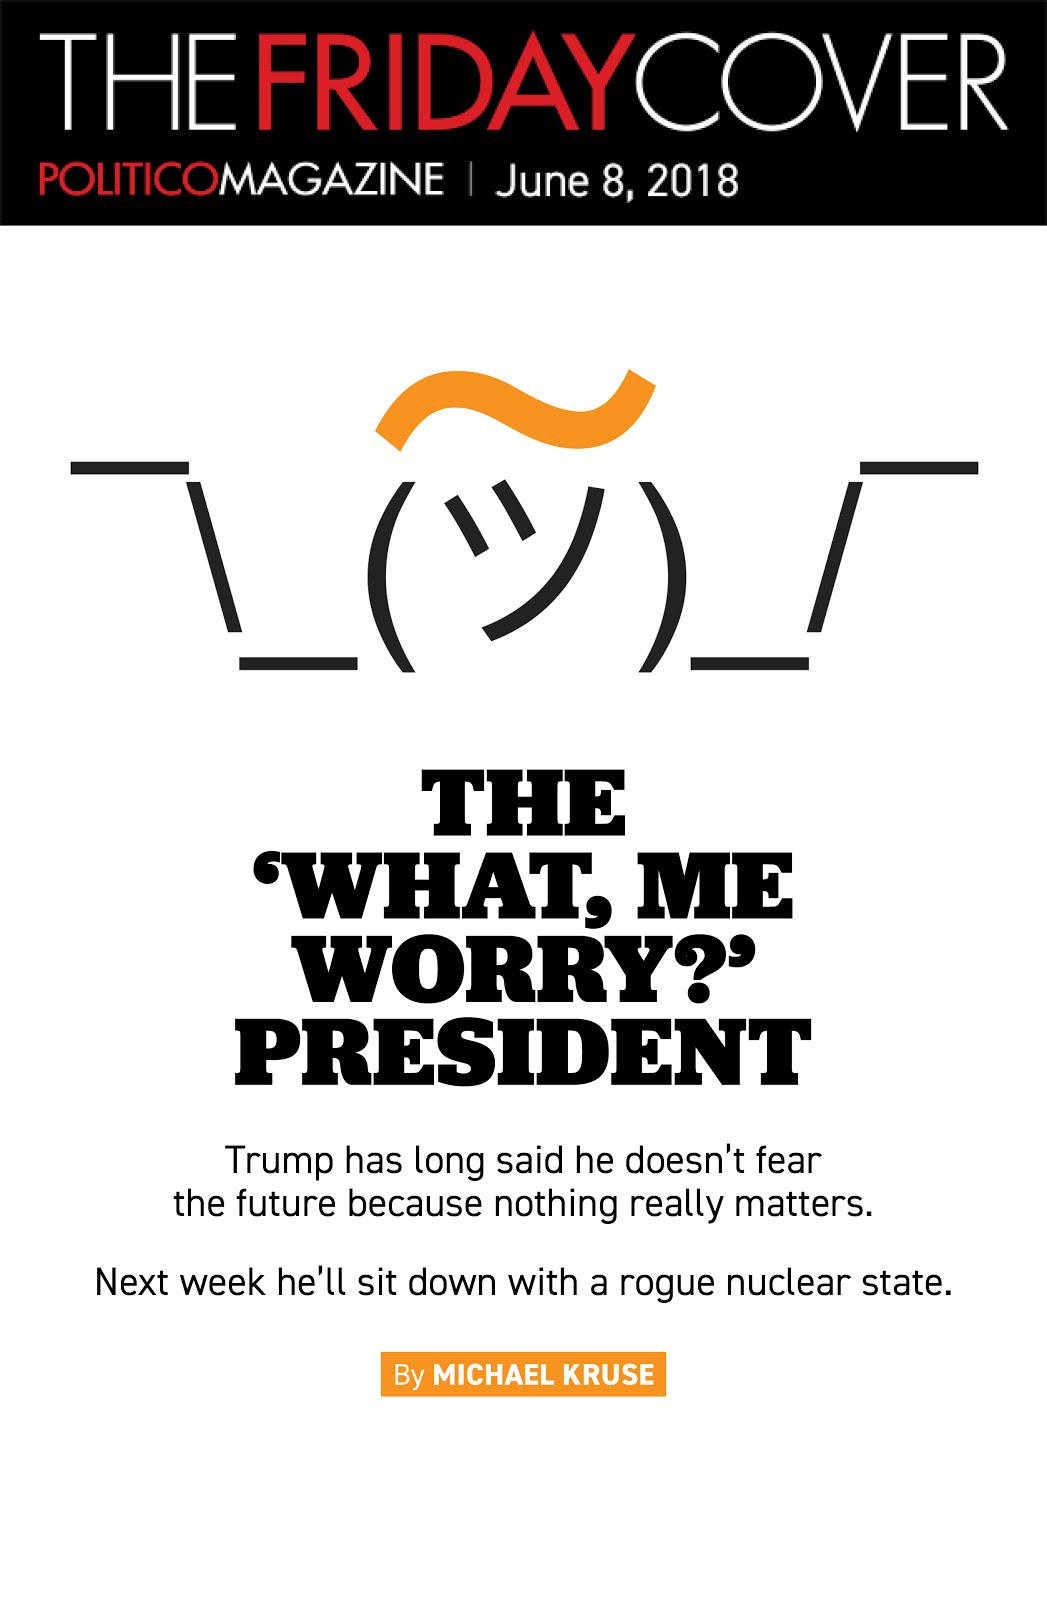 The 'What, Me Worry?' President